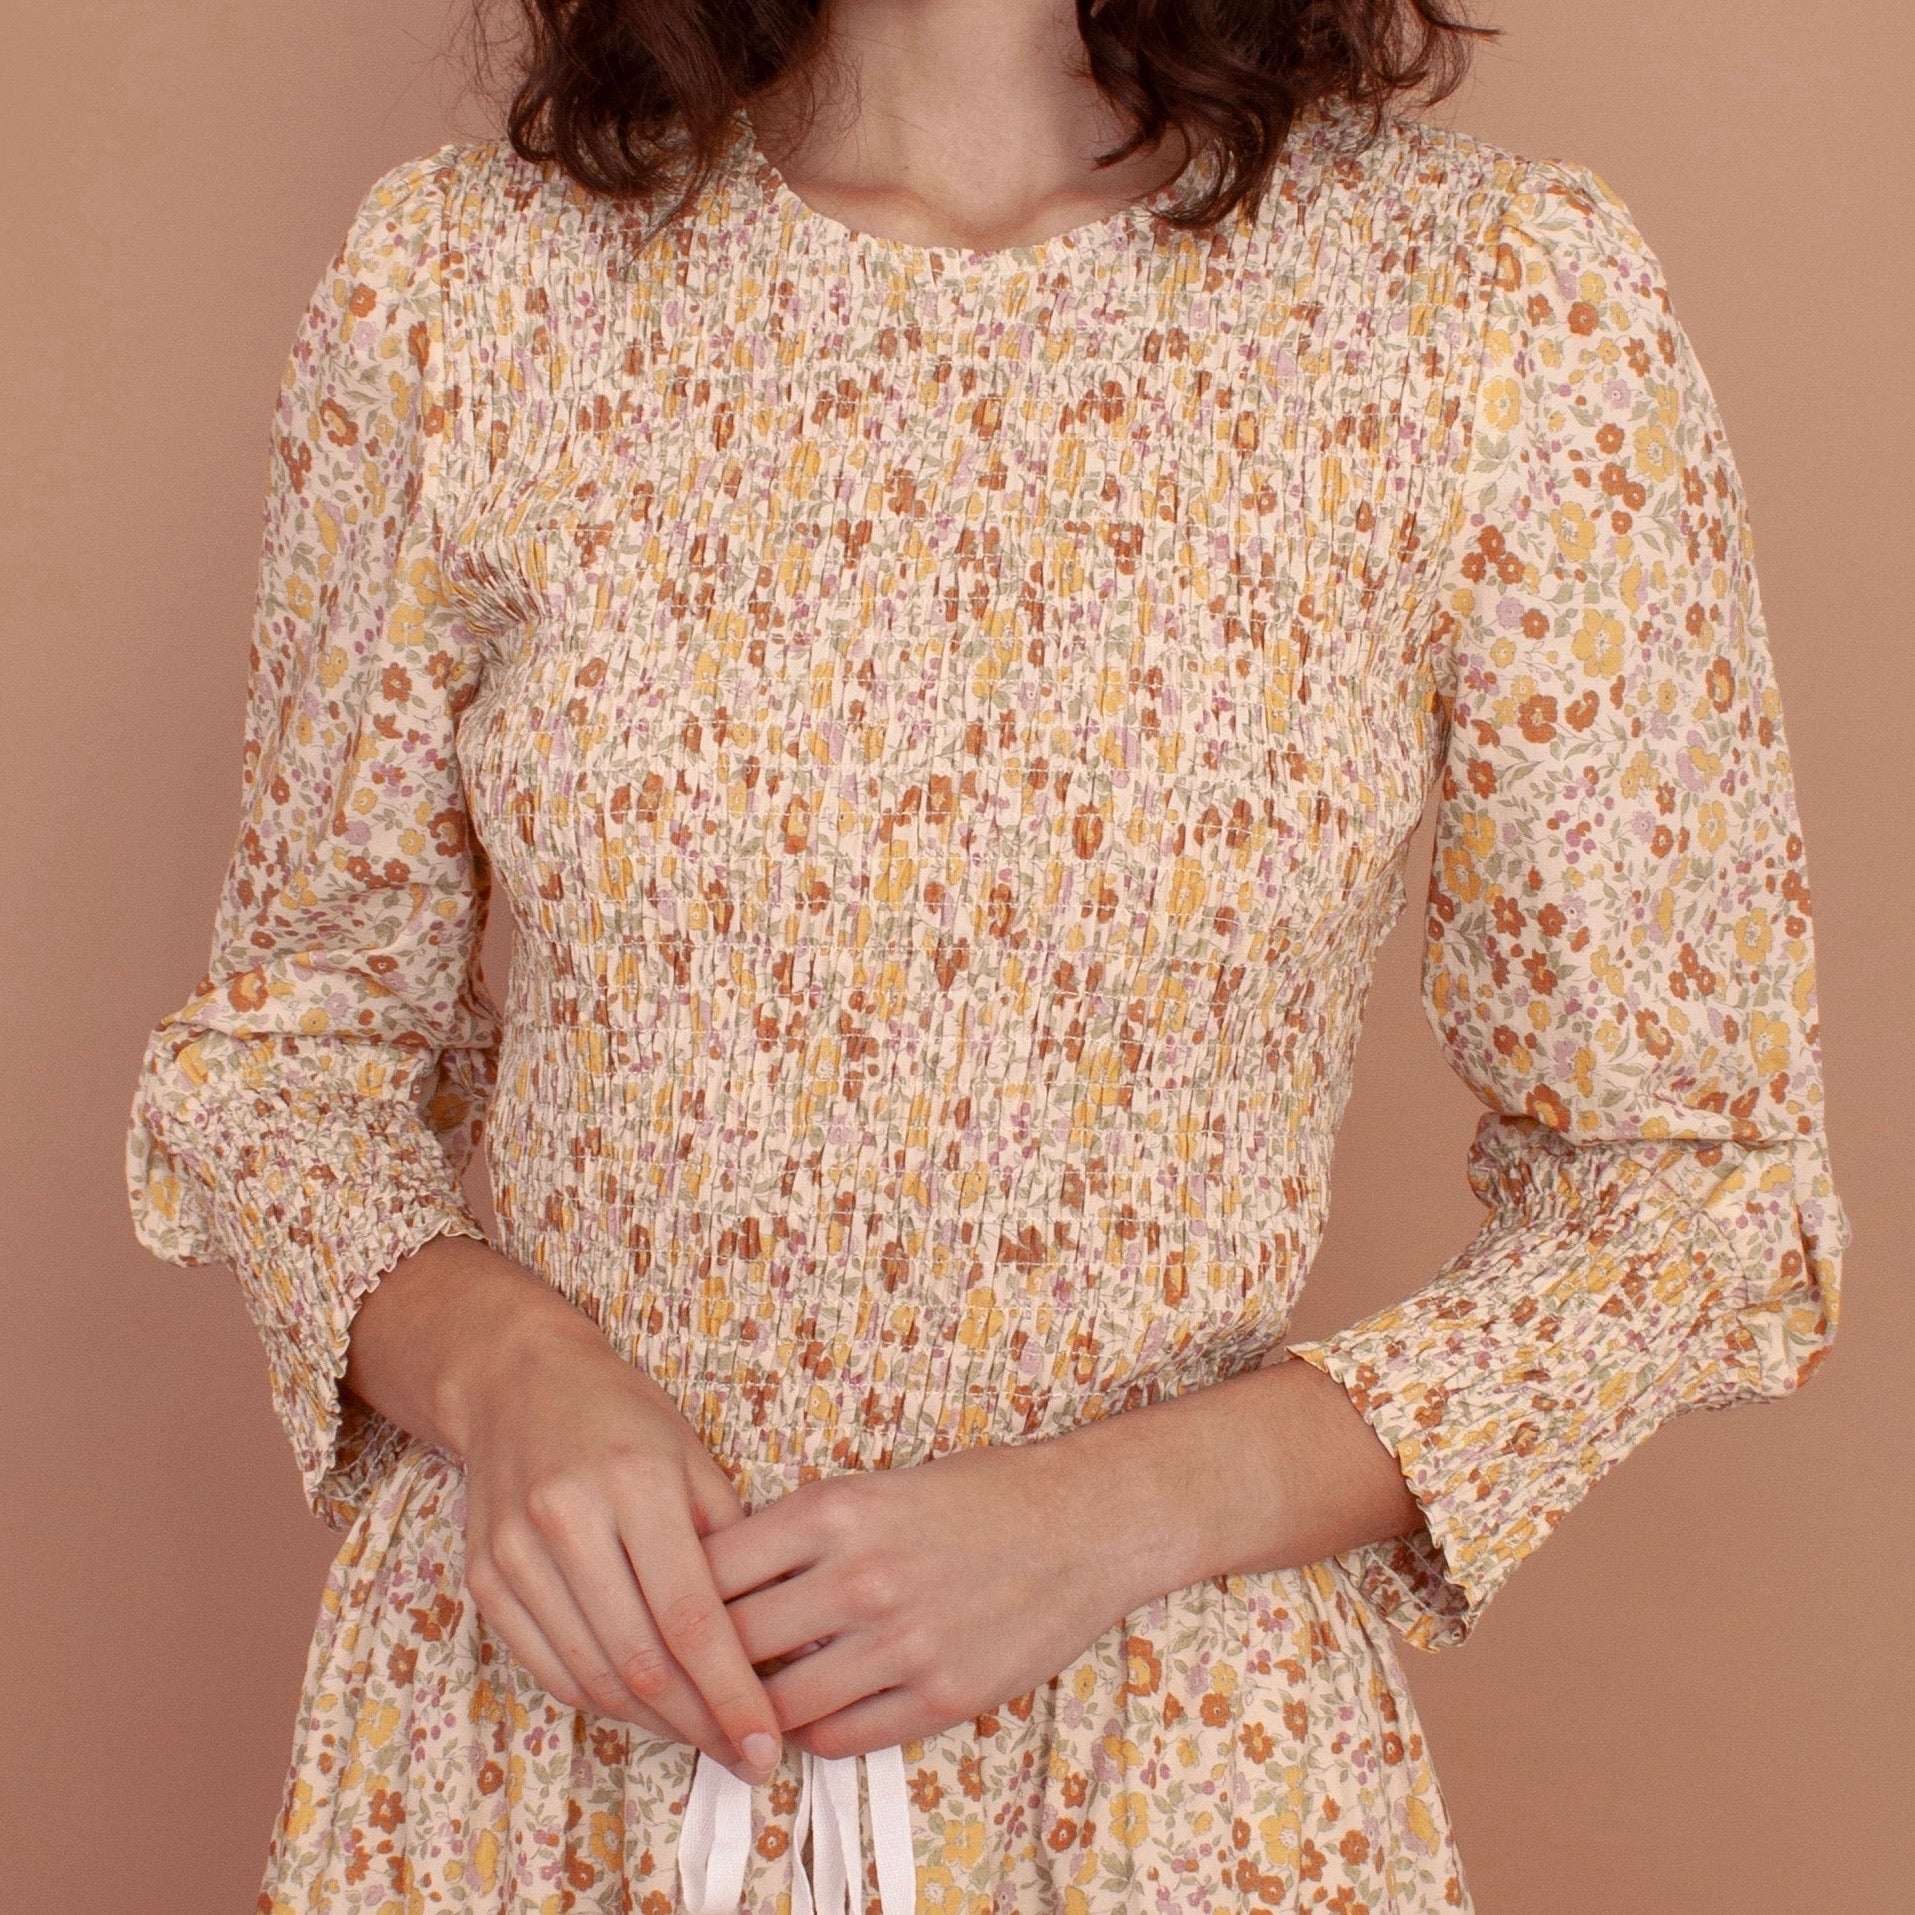 Meadows Rose Top in Vintage Country Floral